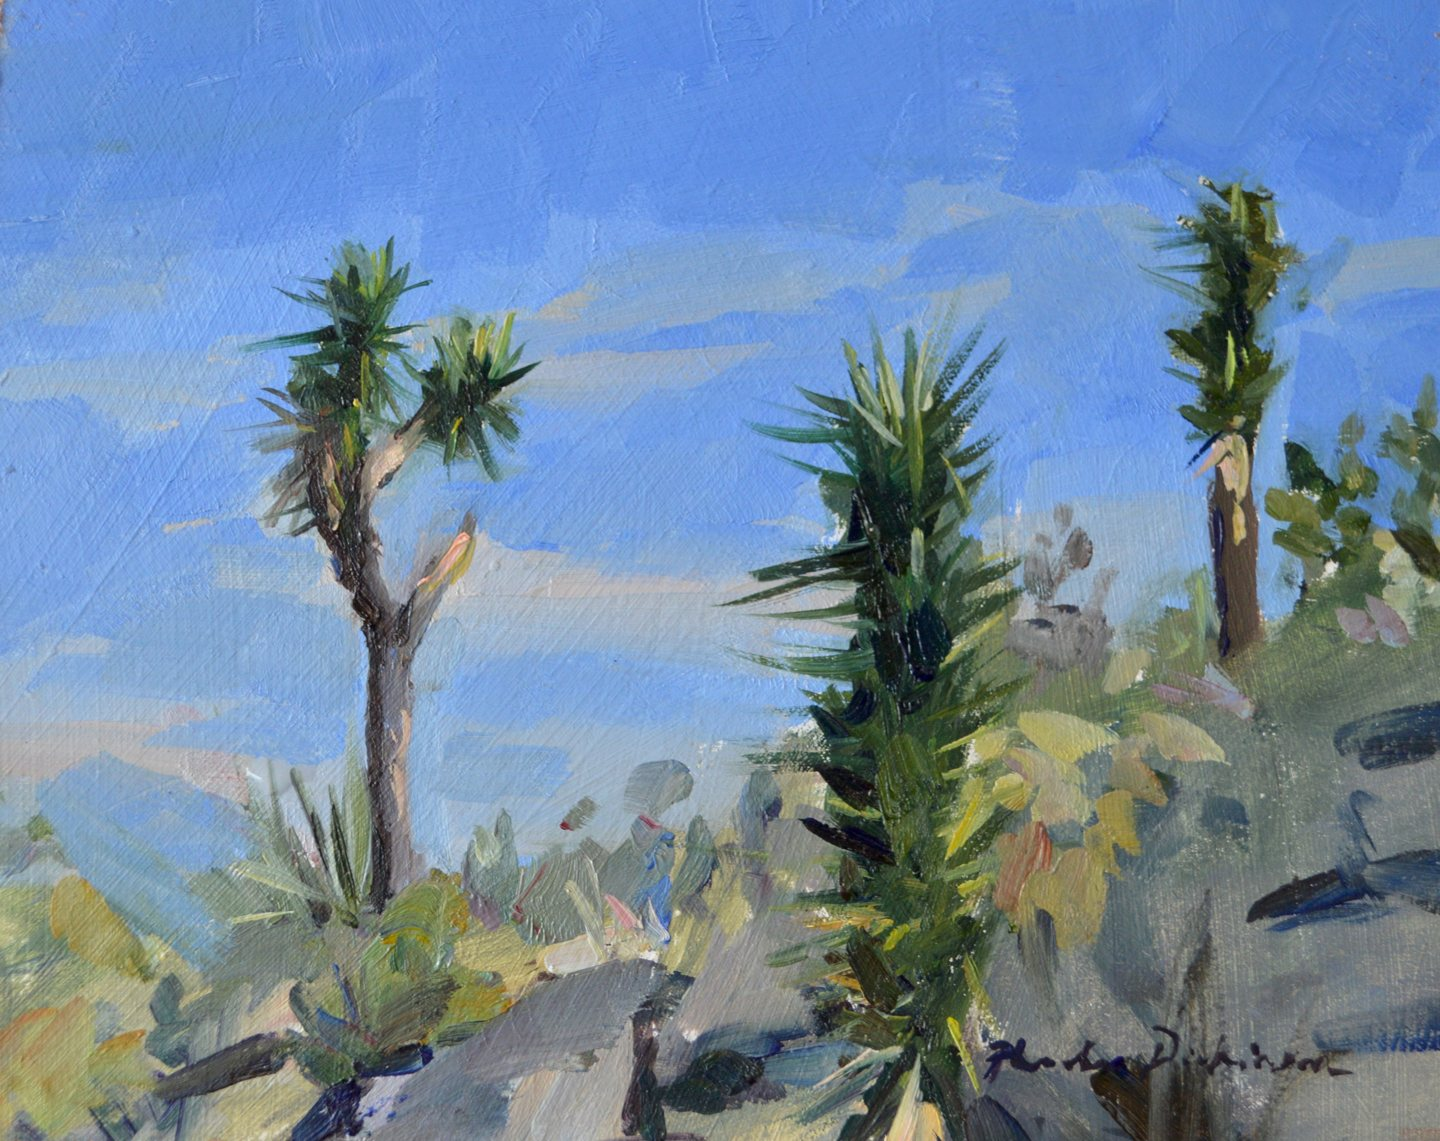 Joshua Trees in the midday sun